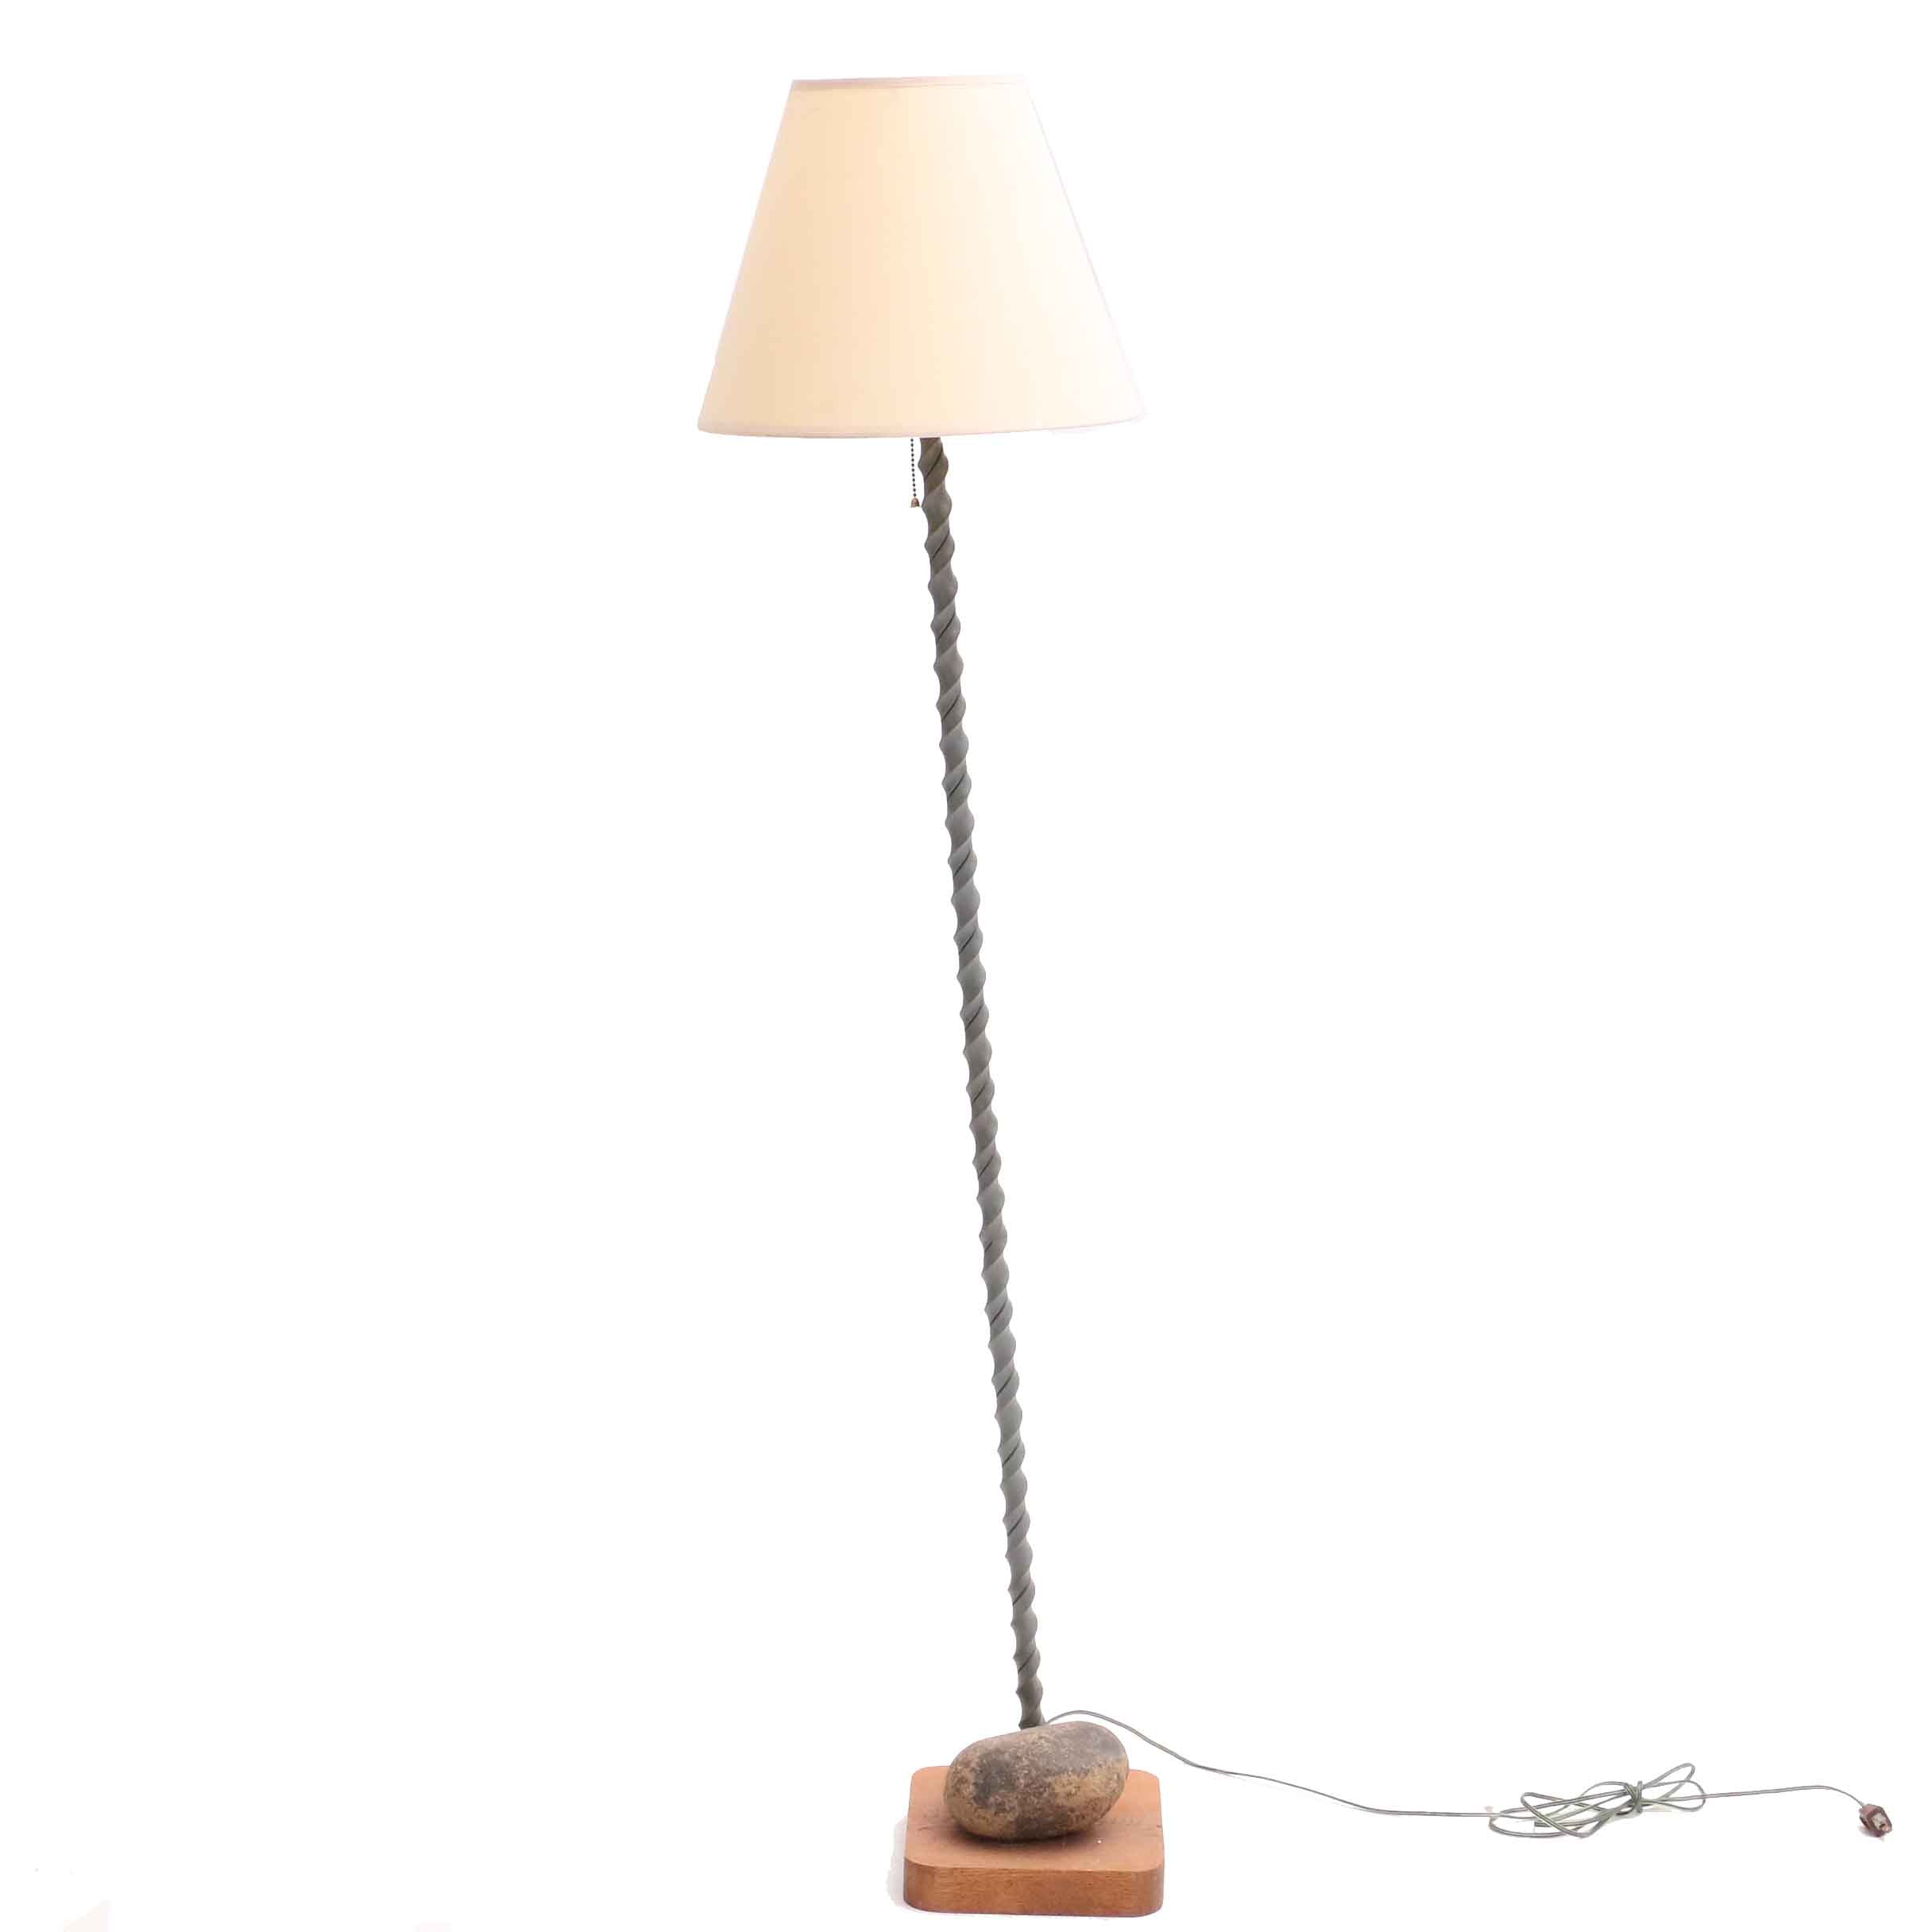 Bronze Finished Spiral Floor Lamp with Rock Weighted Base